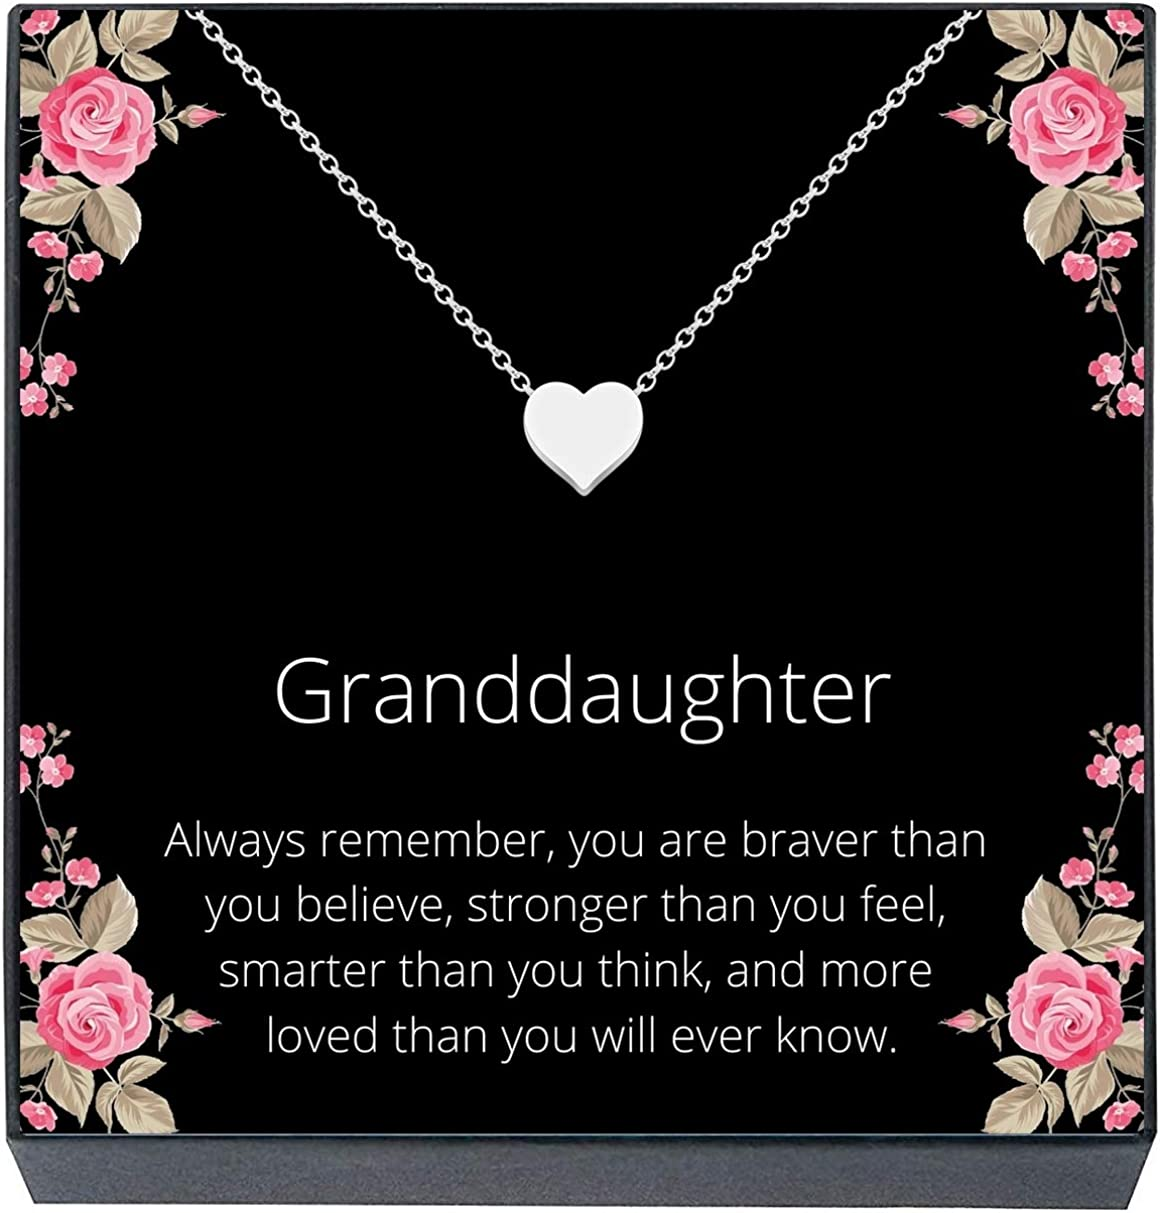 Over item handling Granddaughter Jewelry Heart online shop Necklace from Grandma Gift Grandpa